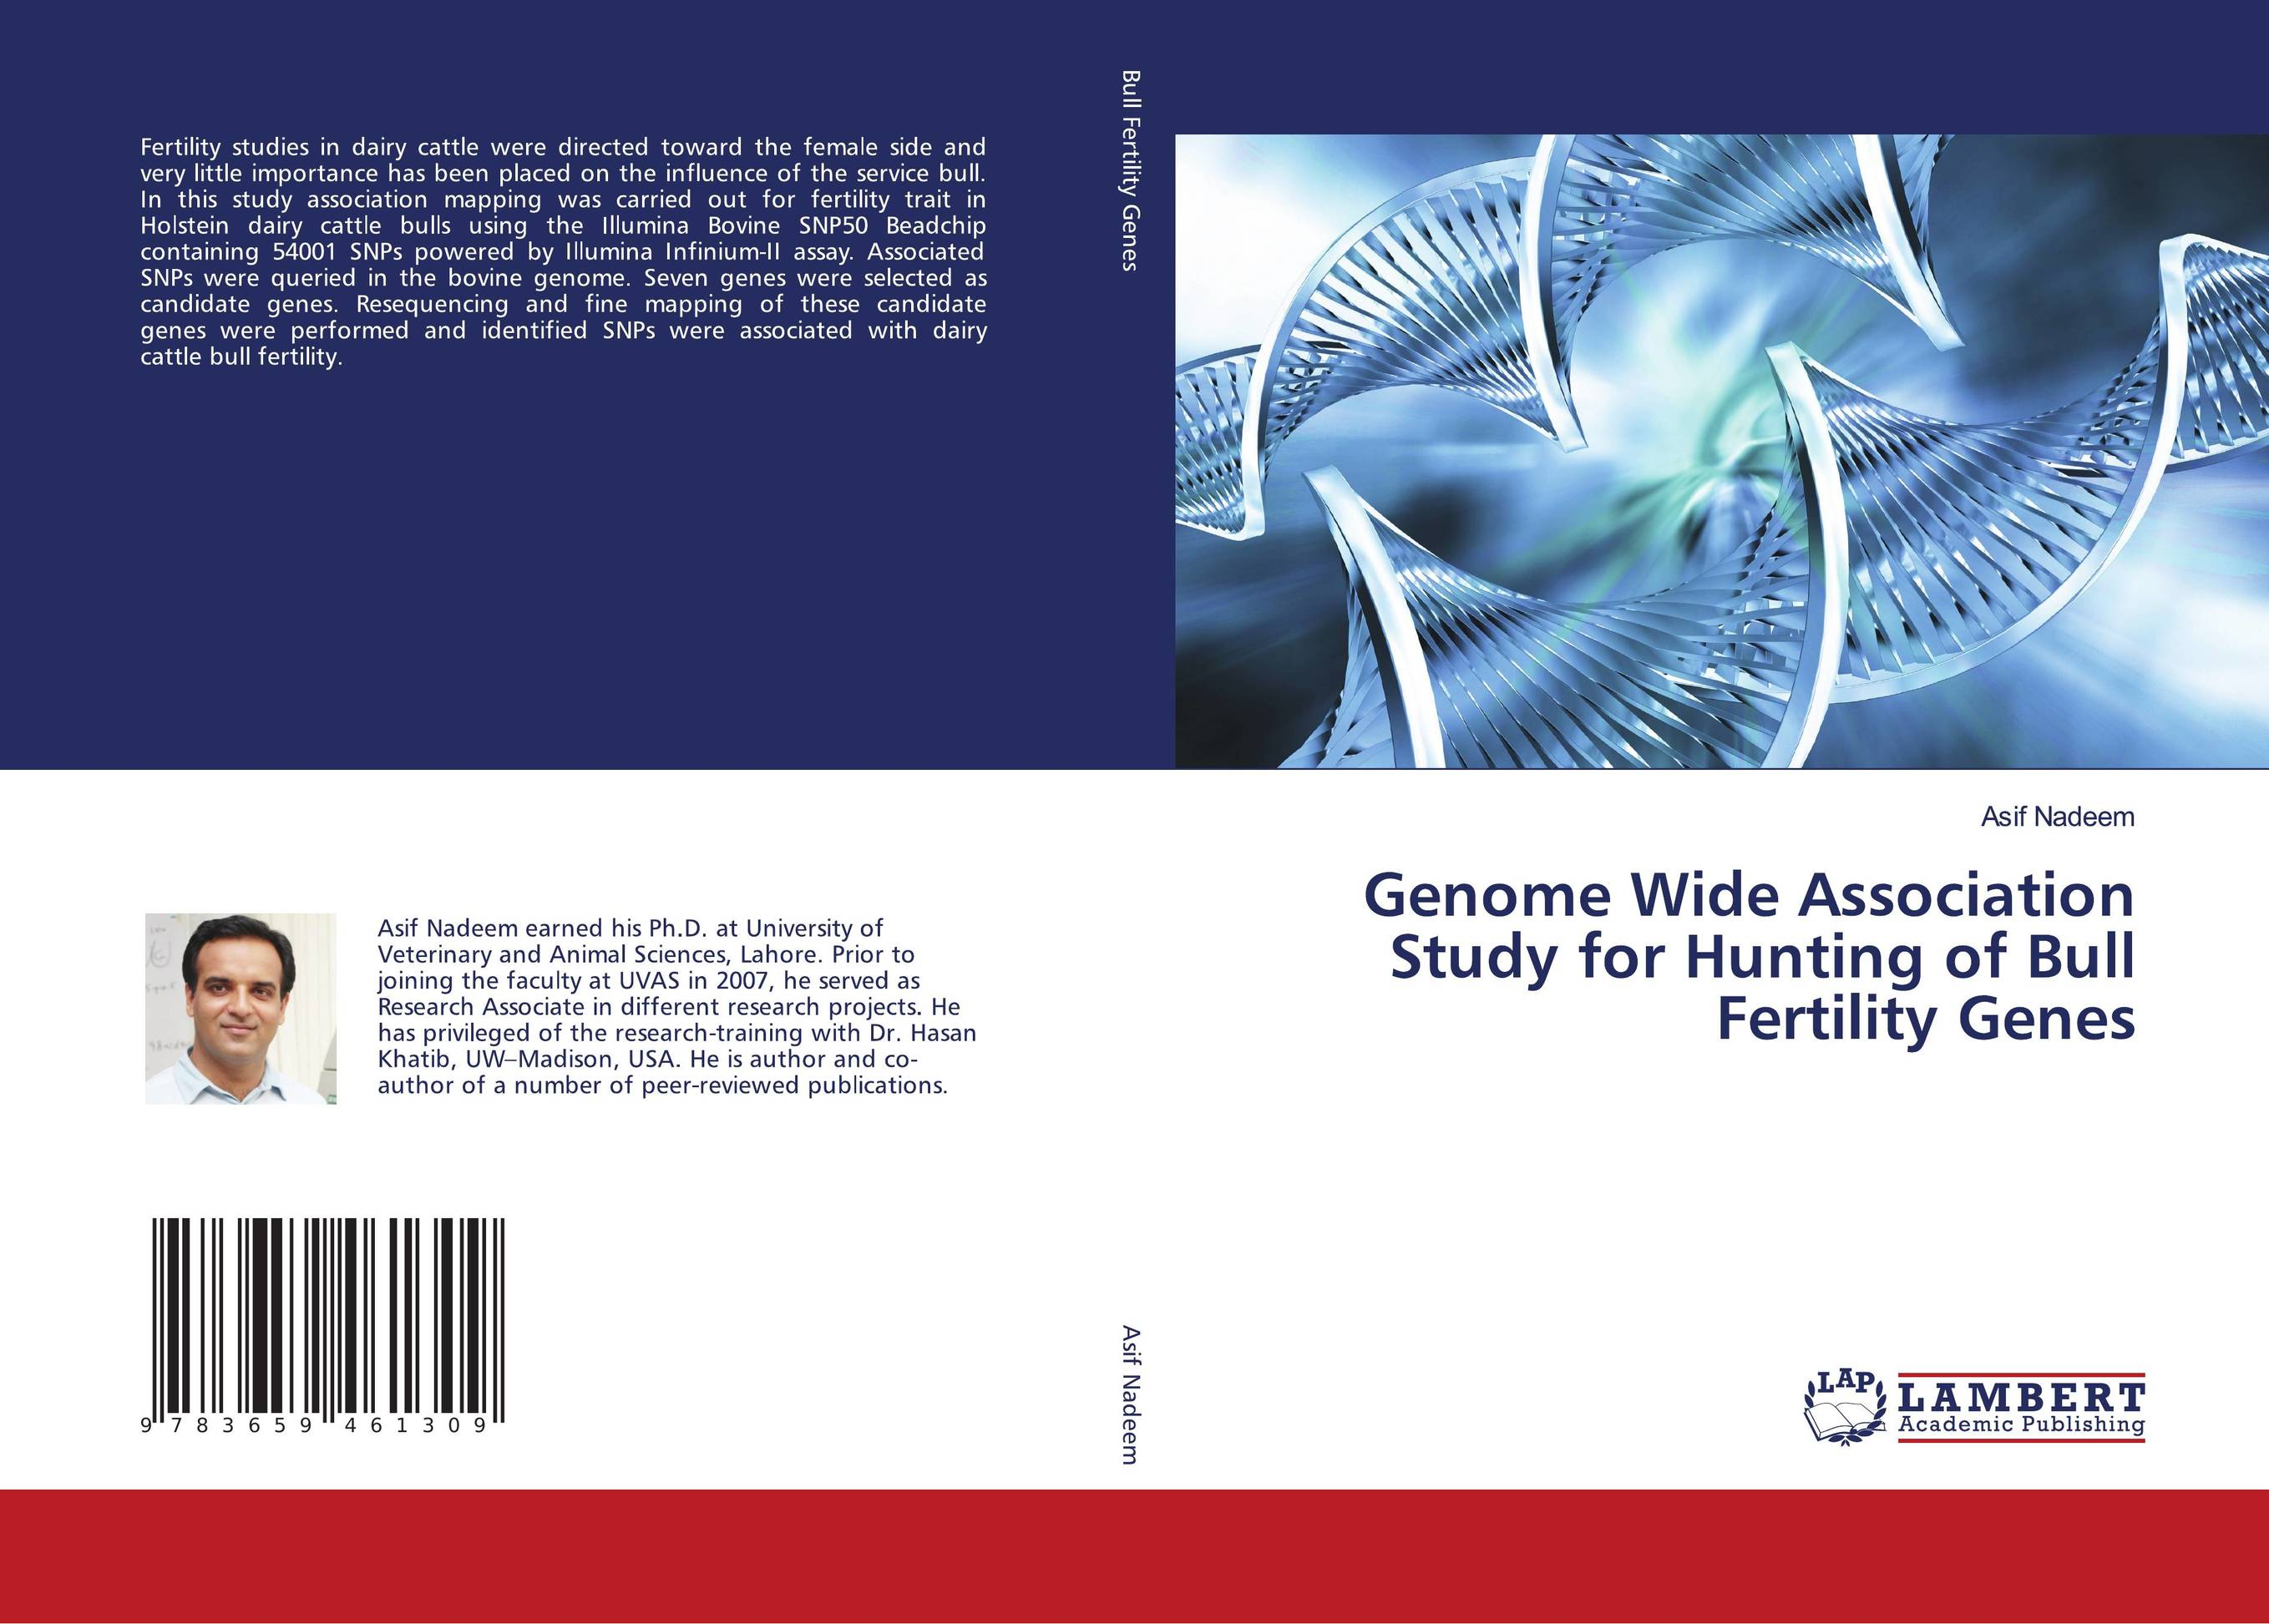 differential fertility a study in bishnupriya Maternal blood groups and differential fertility: the present study on differential fertility and materna1 blood group is based on a sample women admitted to.